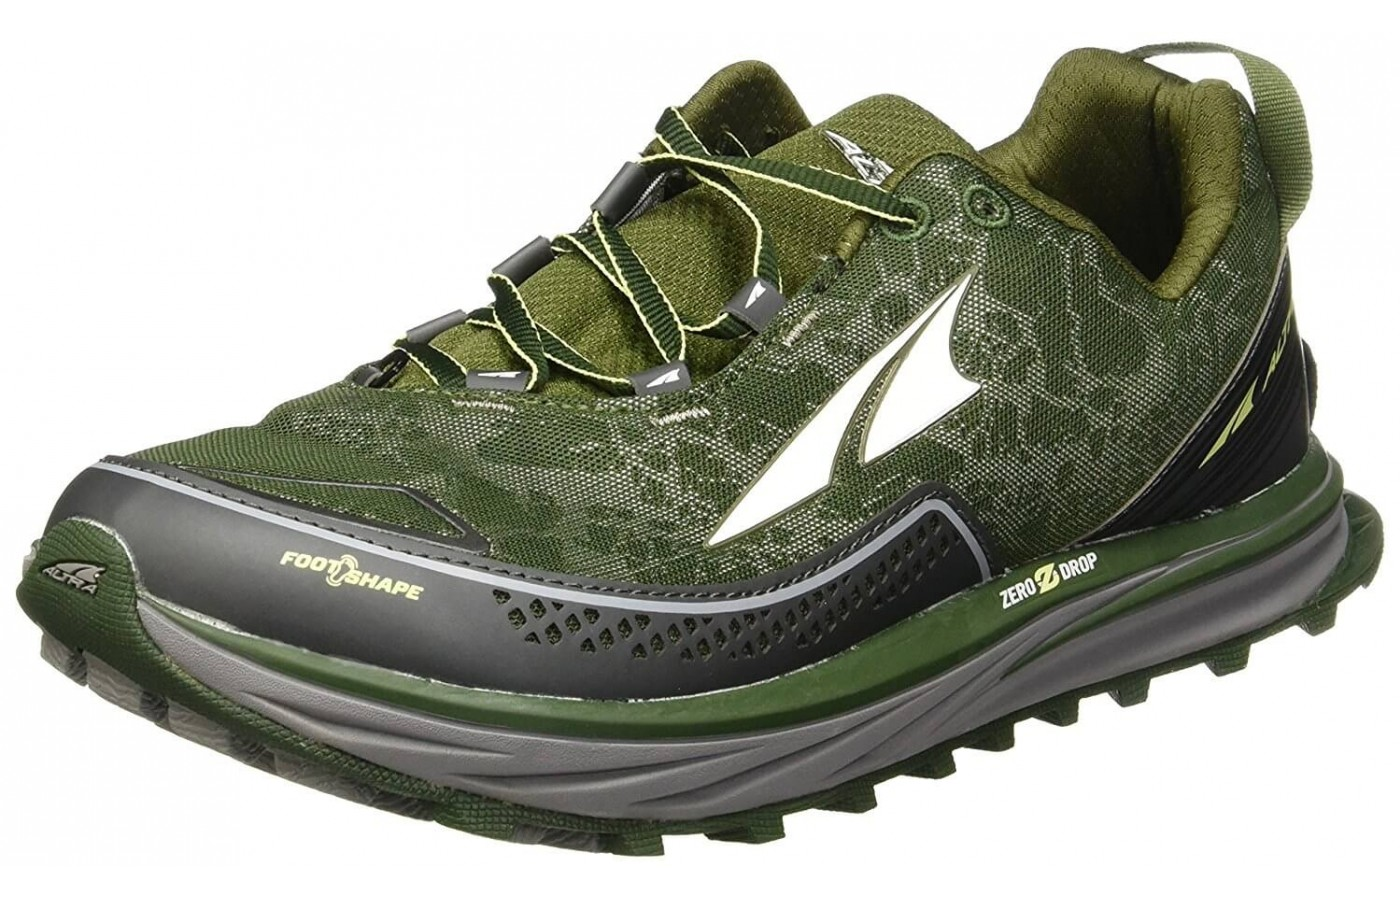 The Altra Timp is a zero drop, fully cushioned trail running shoe.